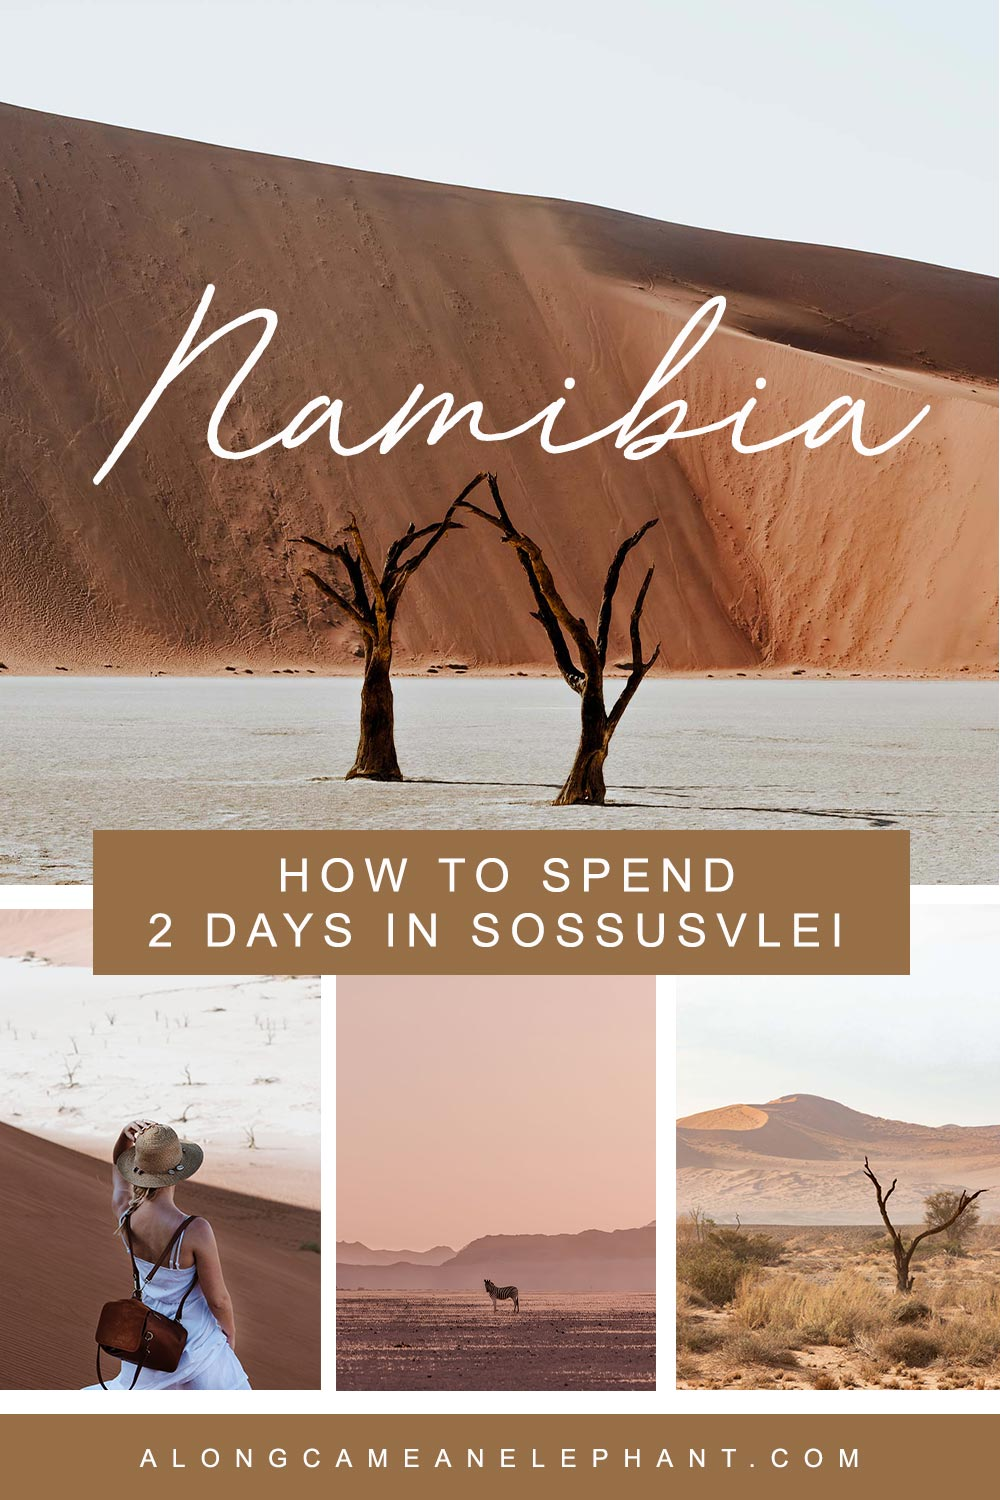 10 amazing things to do while in Sossusvlei, Namibia. A perfect 2day Sossusvlei itinerary covering the must-see highlights like Deadvlei, Sossusvlei and the majestic dunes but also some lesser traveled and tranquil attractions.  #travelnamibia #deadvlei #sossusvlei #namibiaitinerary #roadtrip